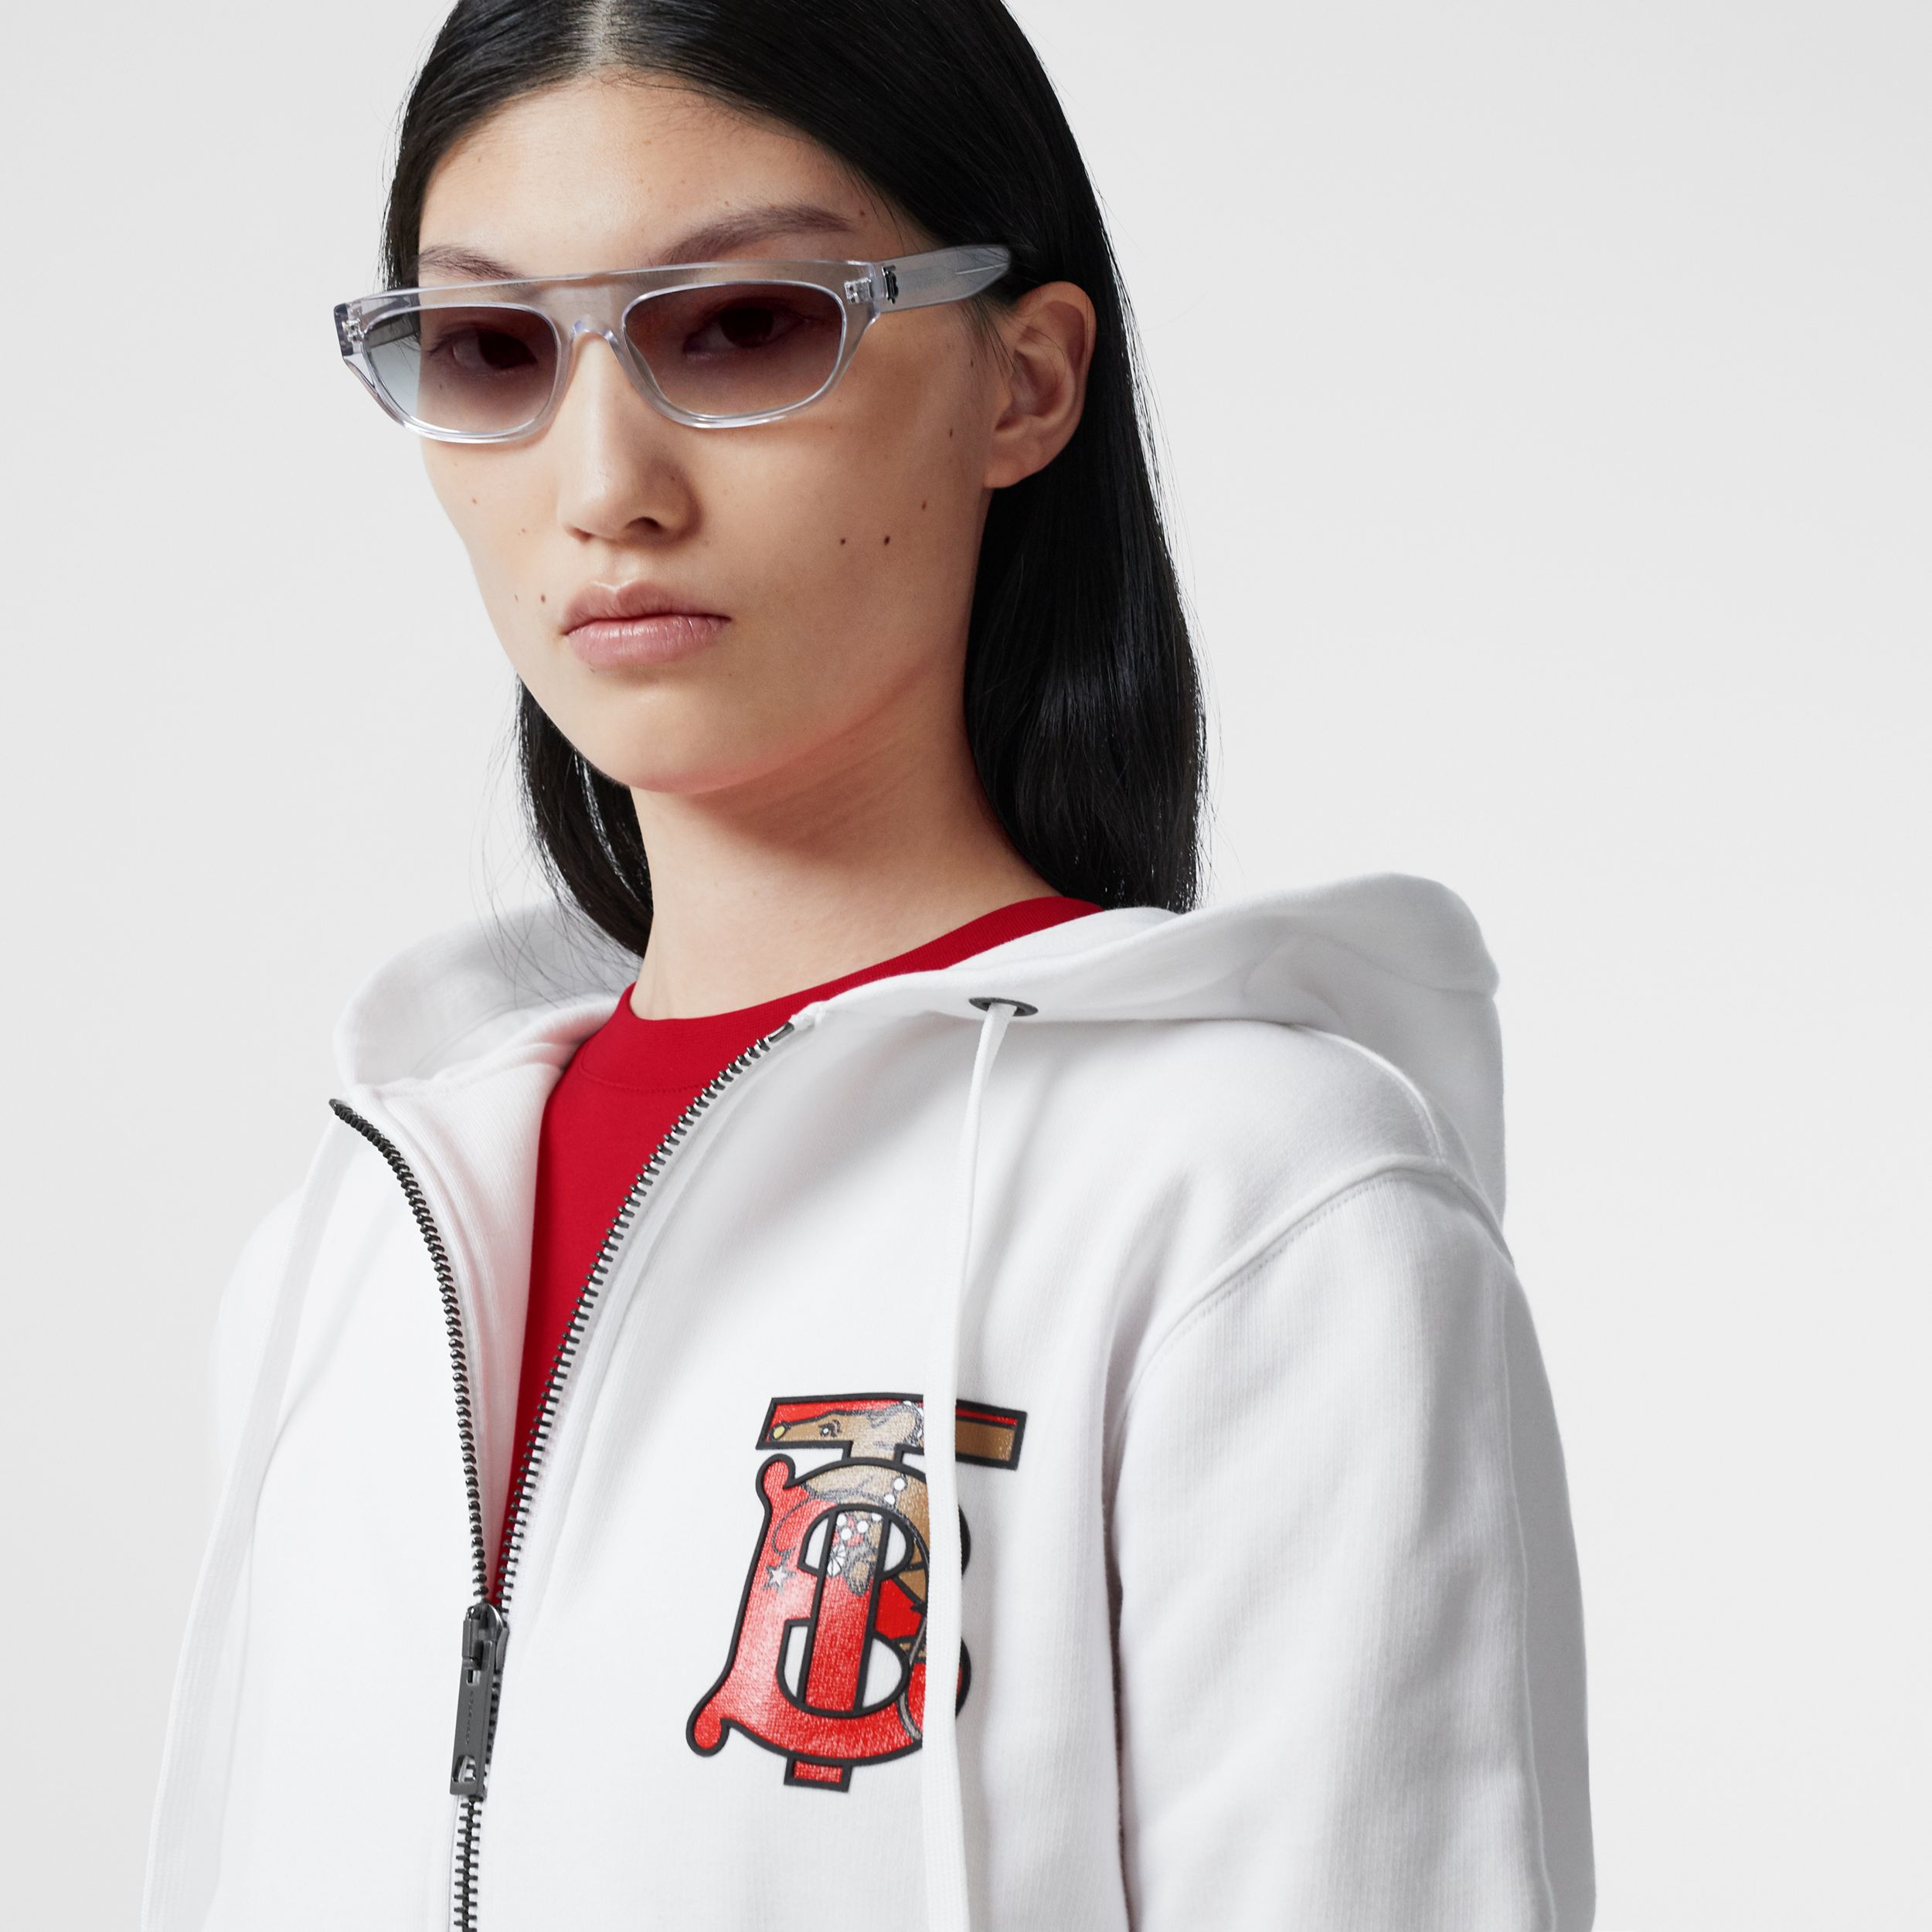 Monogram Motif Cotton Oversized Hooded Top in White - Women | Burberry - 2